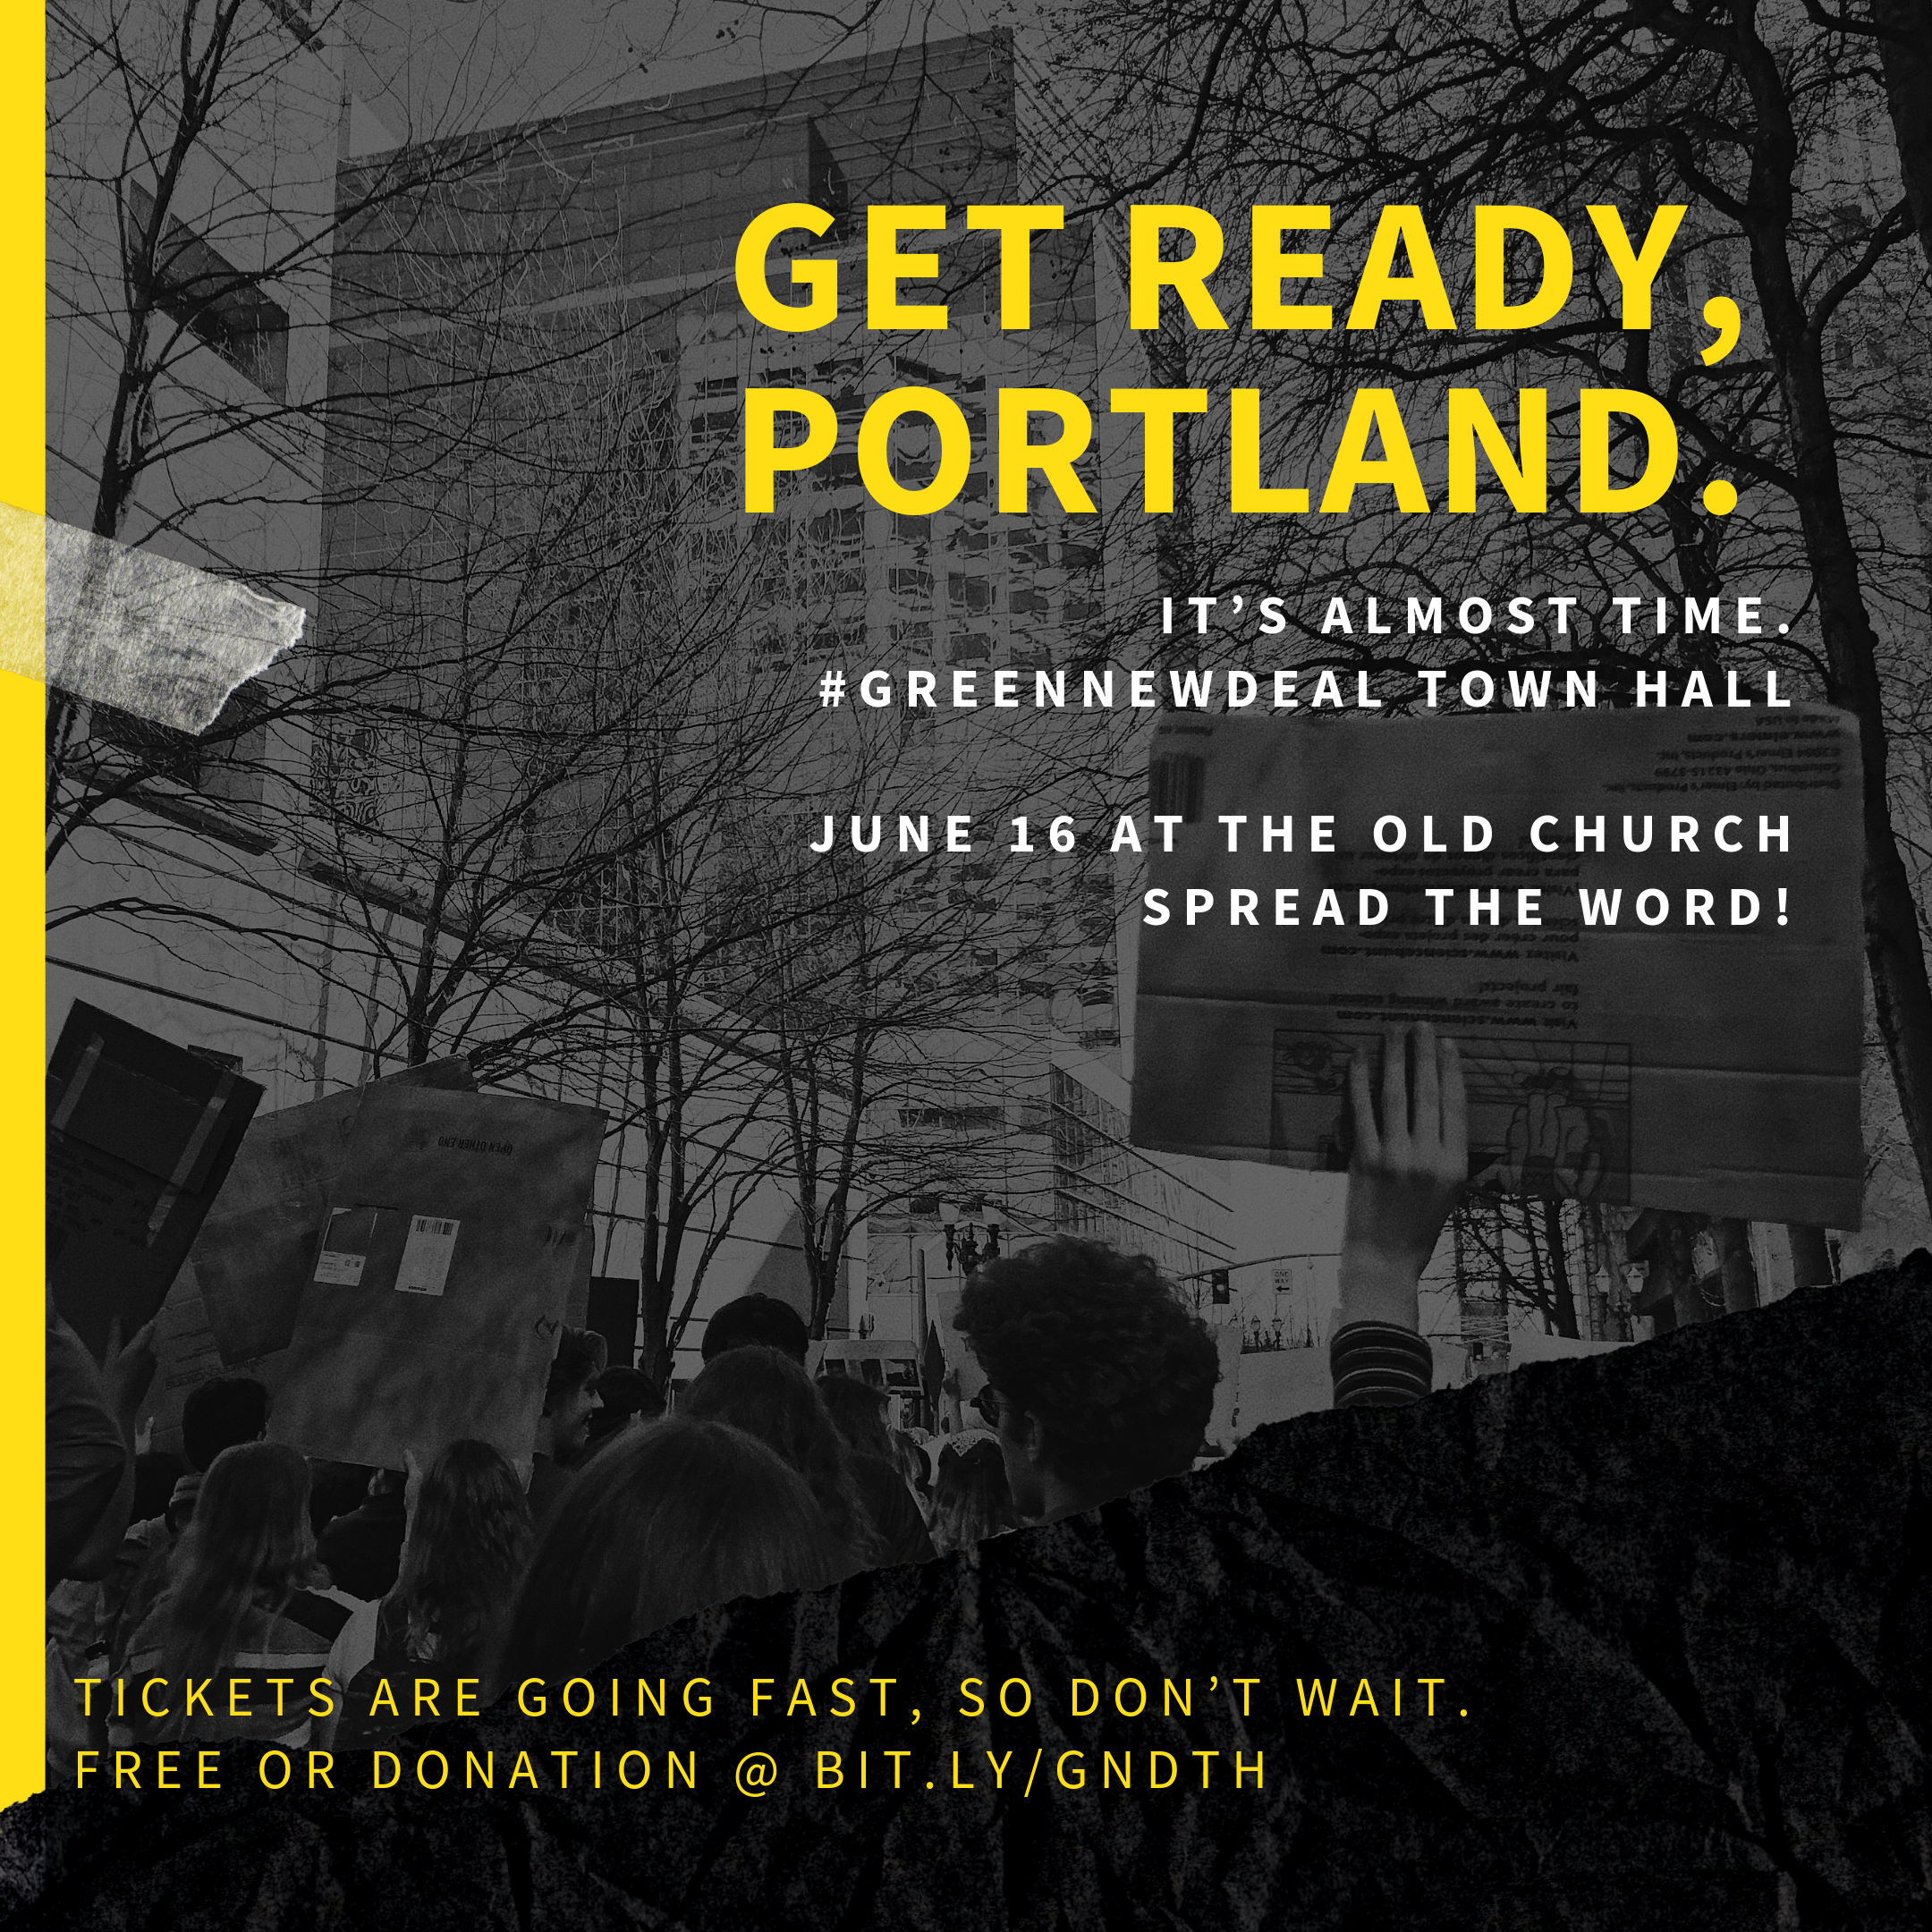 it's almost time. #greennewdeal town hall  june 16 at the old church spread the word!.png